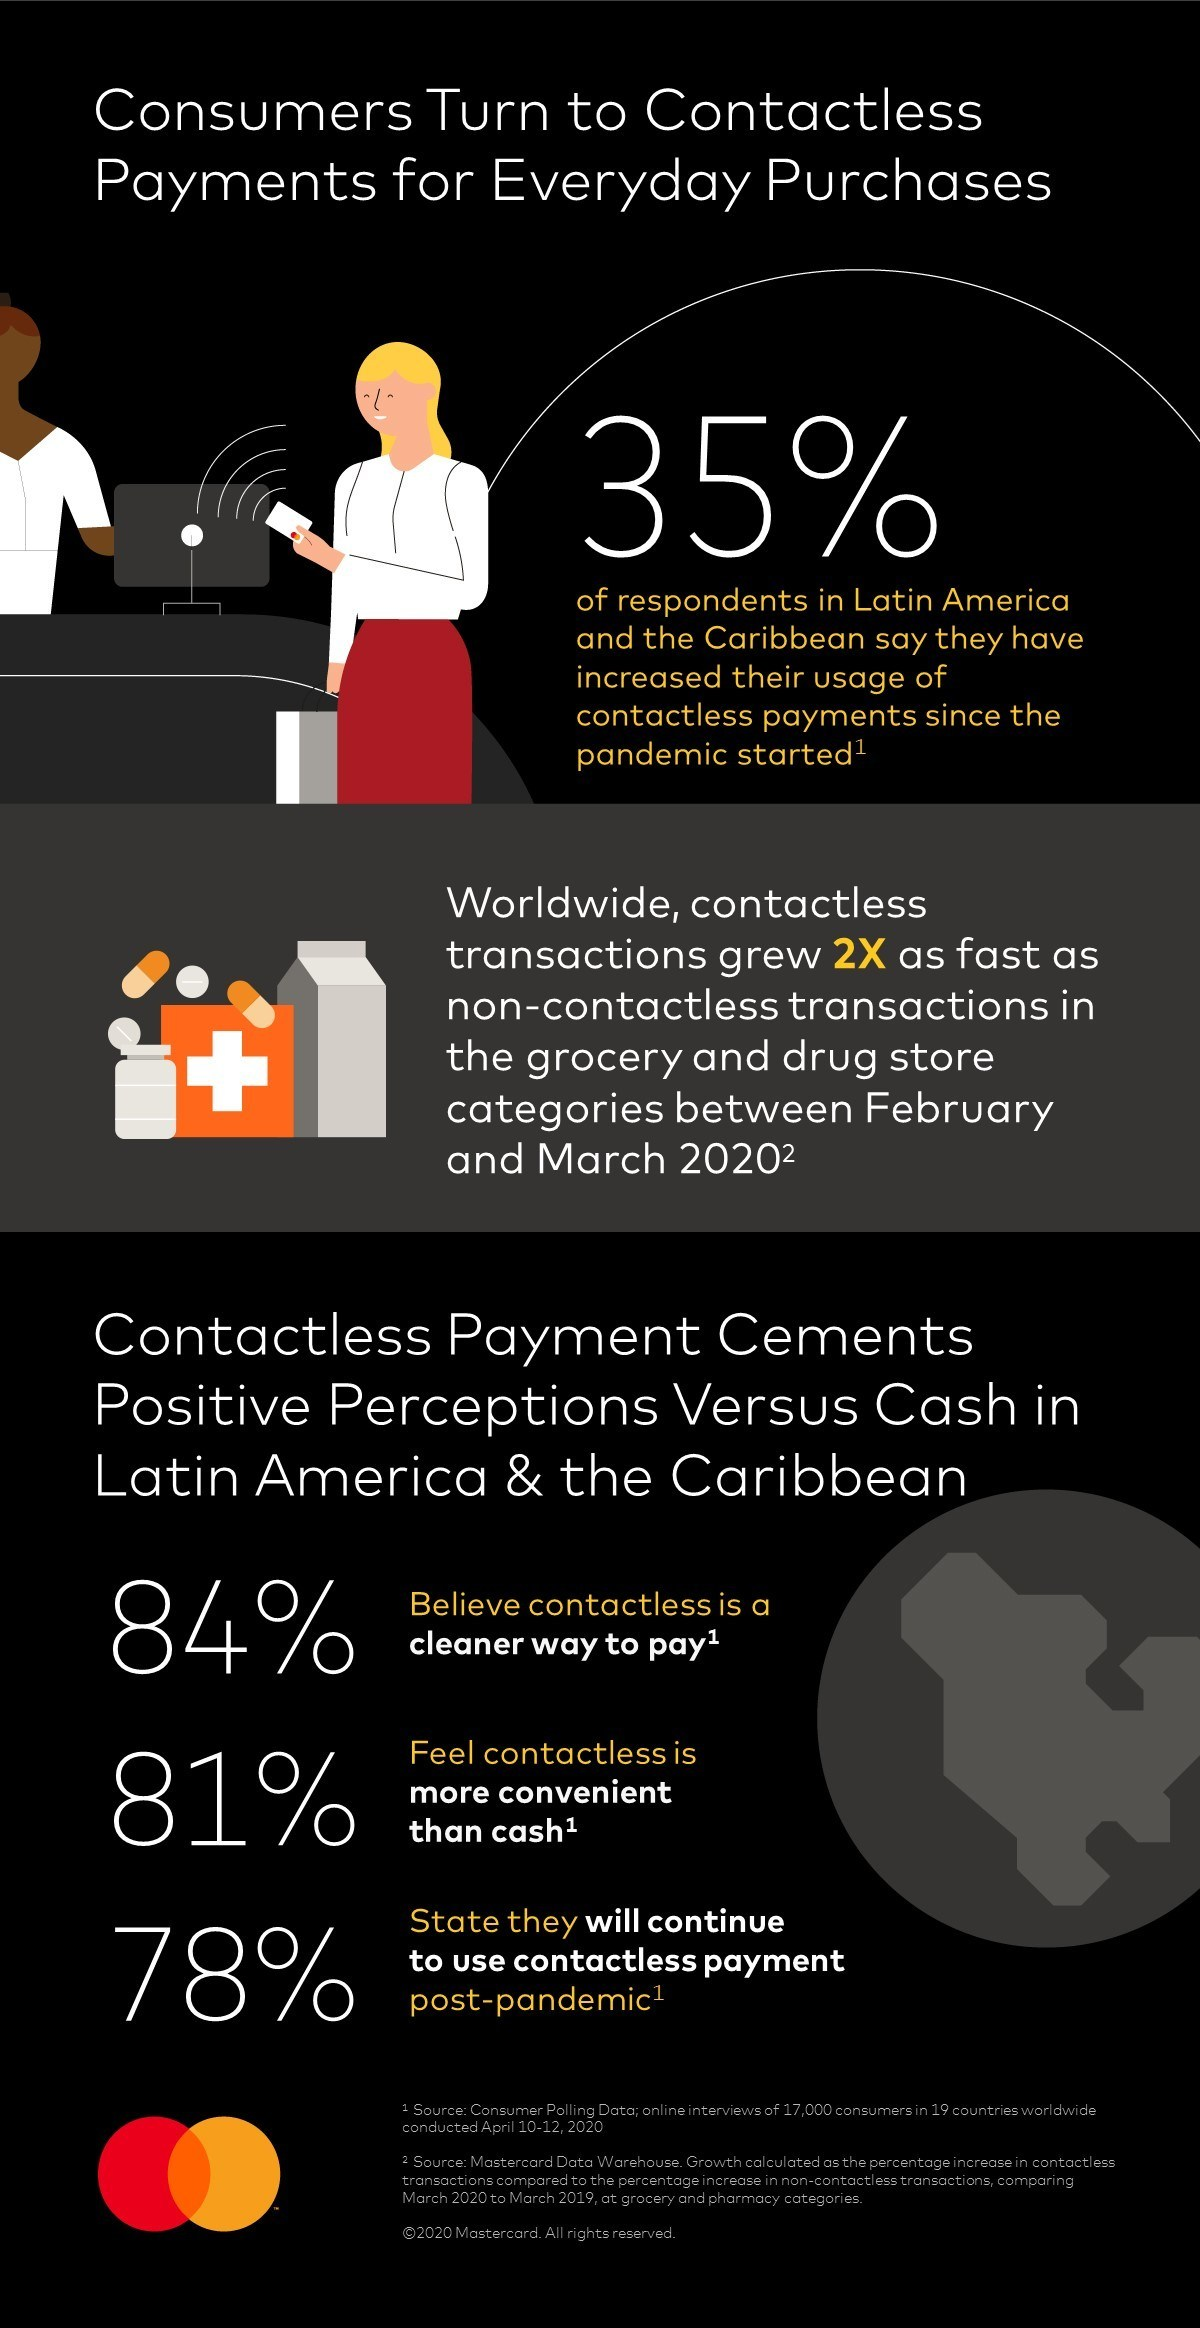 Mastercard Study Shows Consumers in LAC Make the Move to Contactless Payments